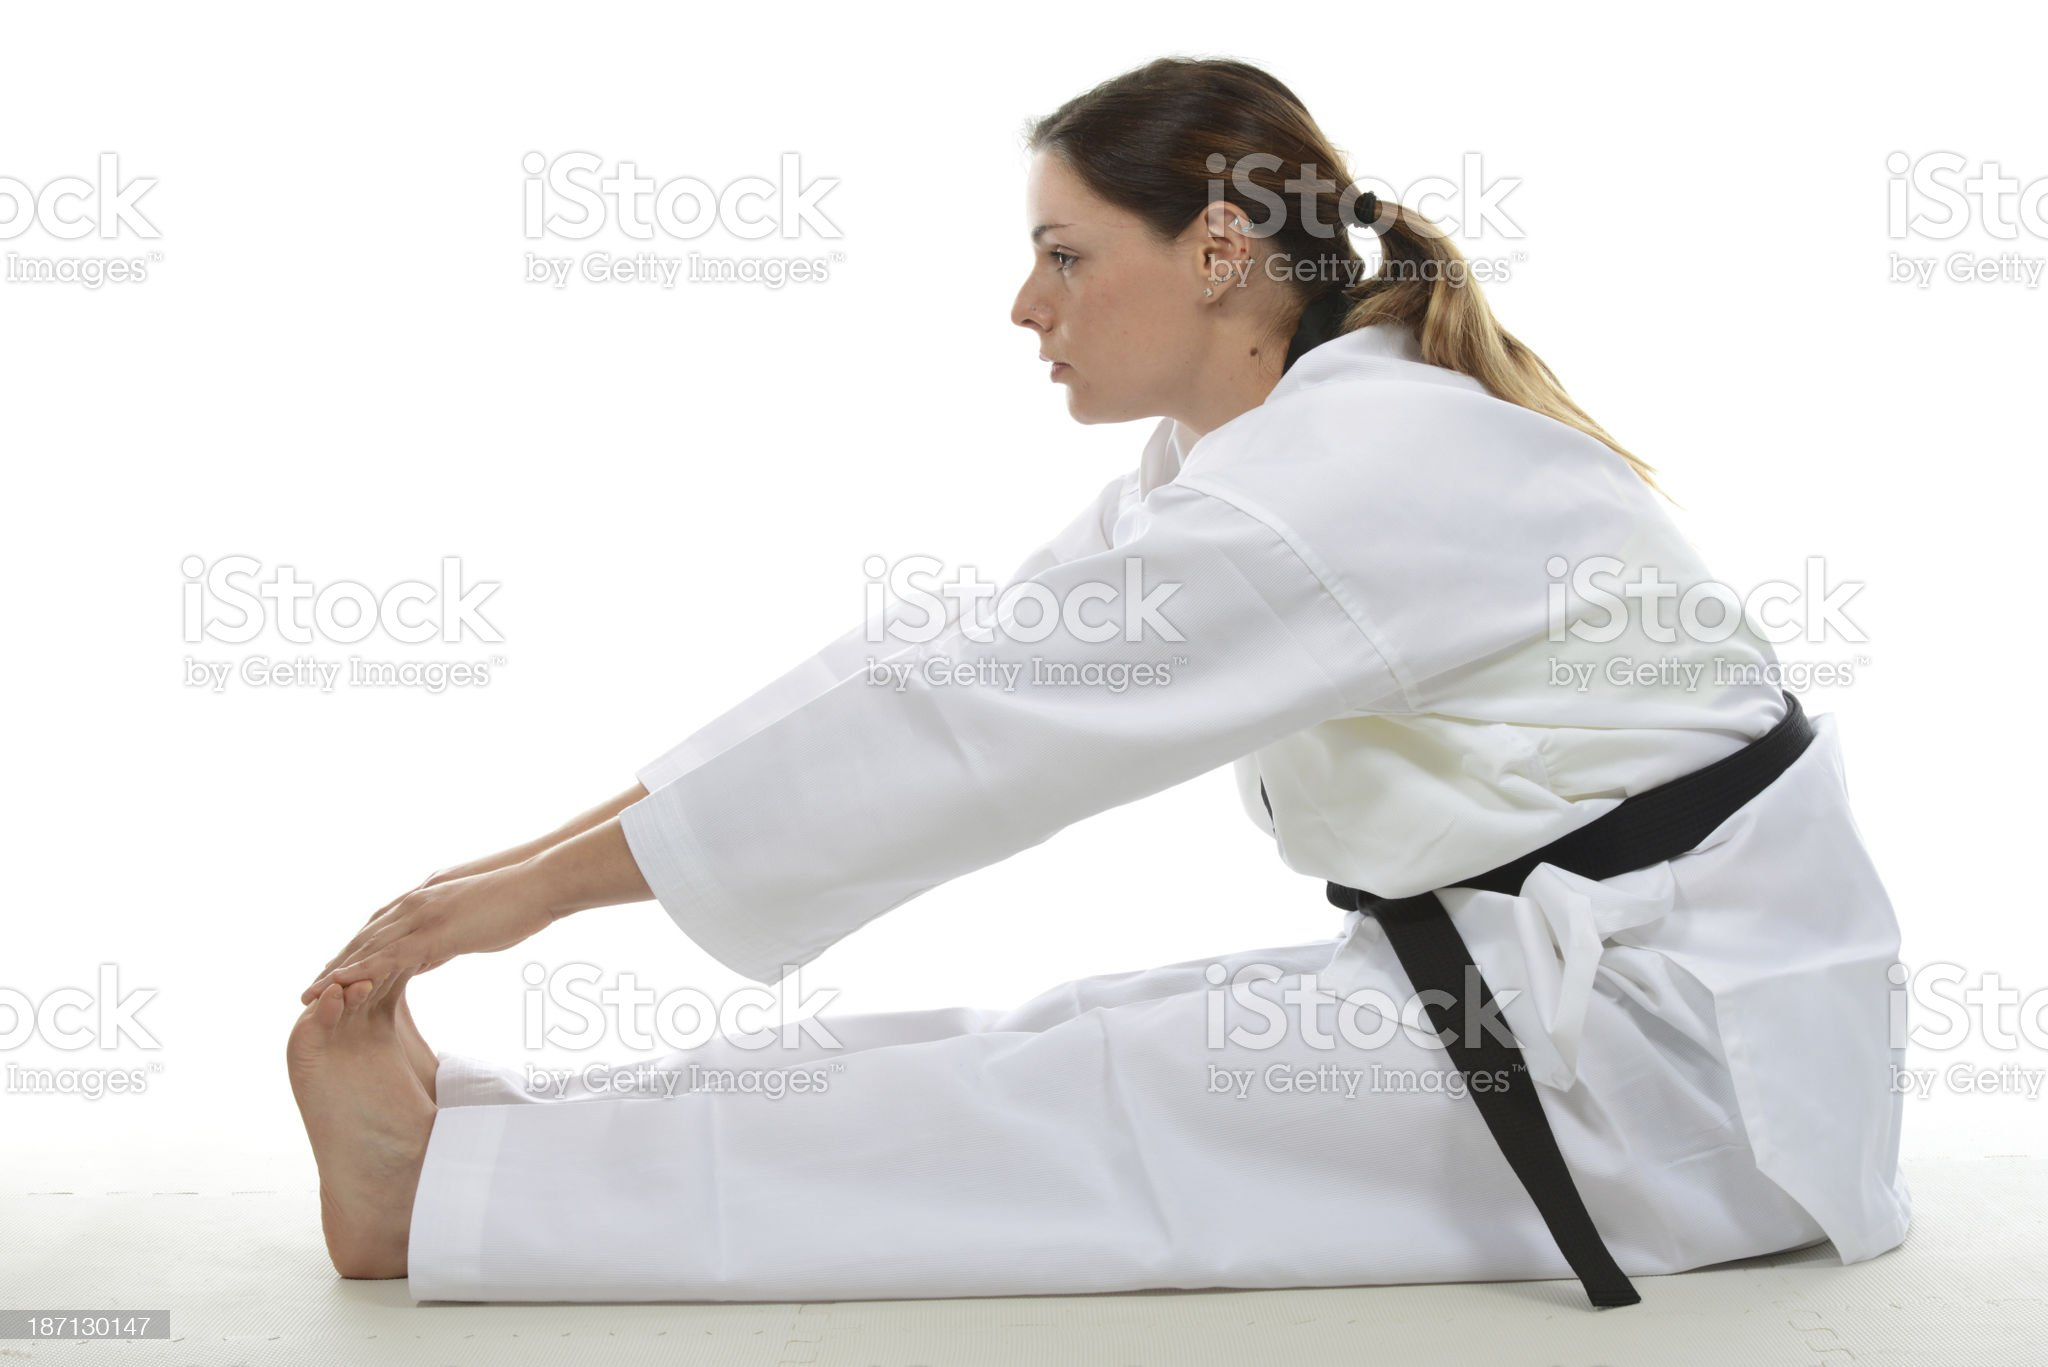 Toe touching warm up royalty-free stock photo